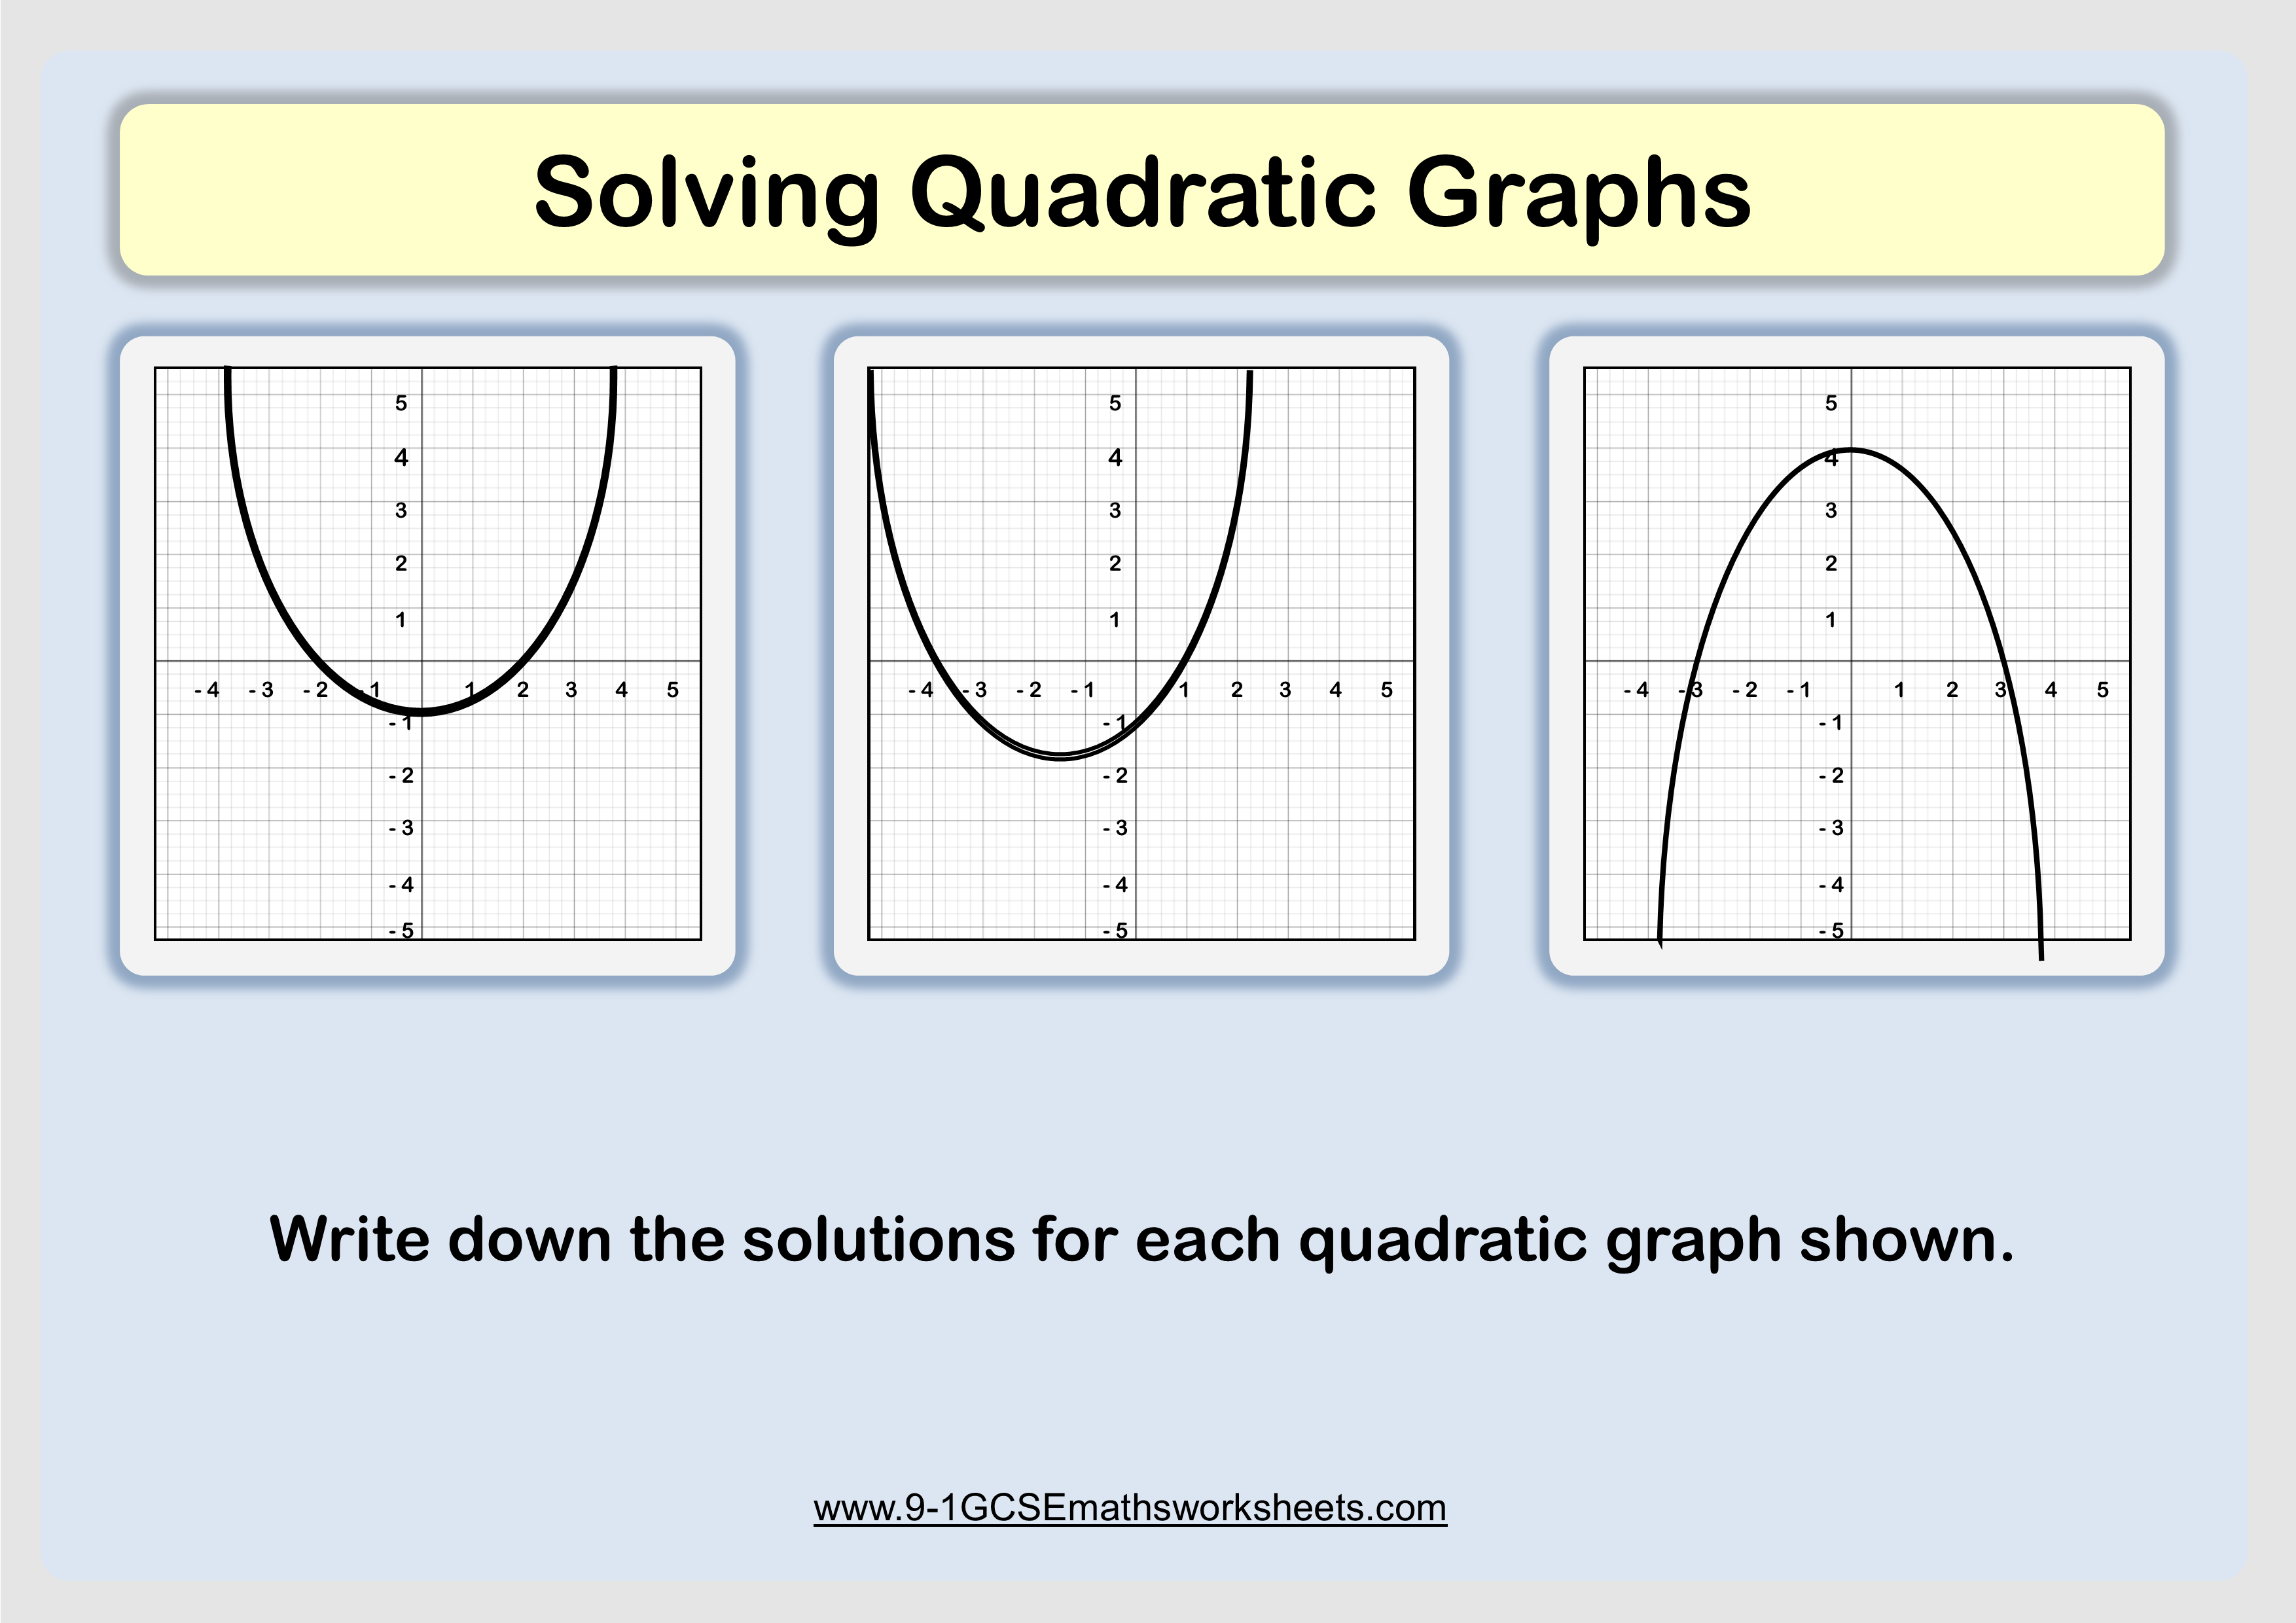 Solving Quadratic Graphs Example For Shading Regions Of